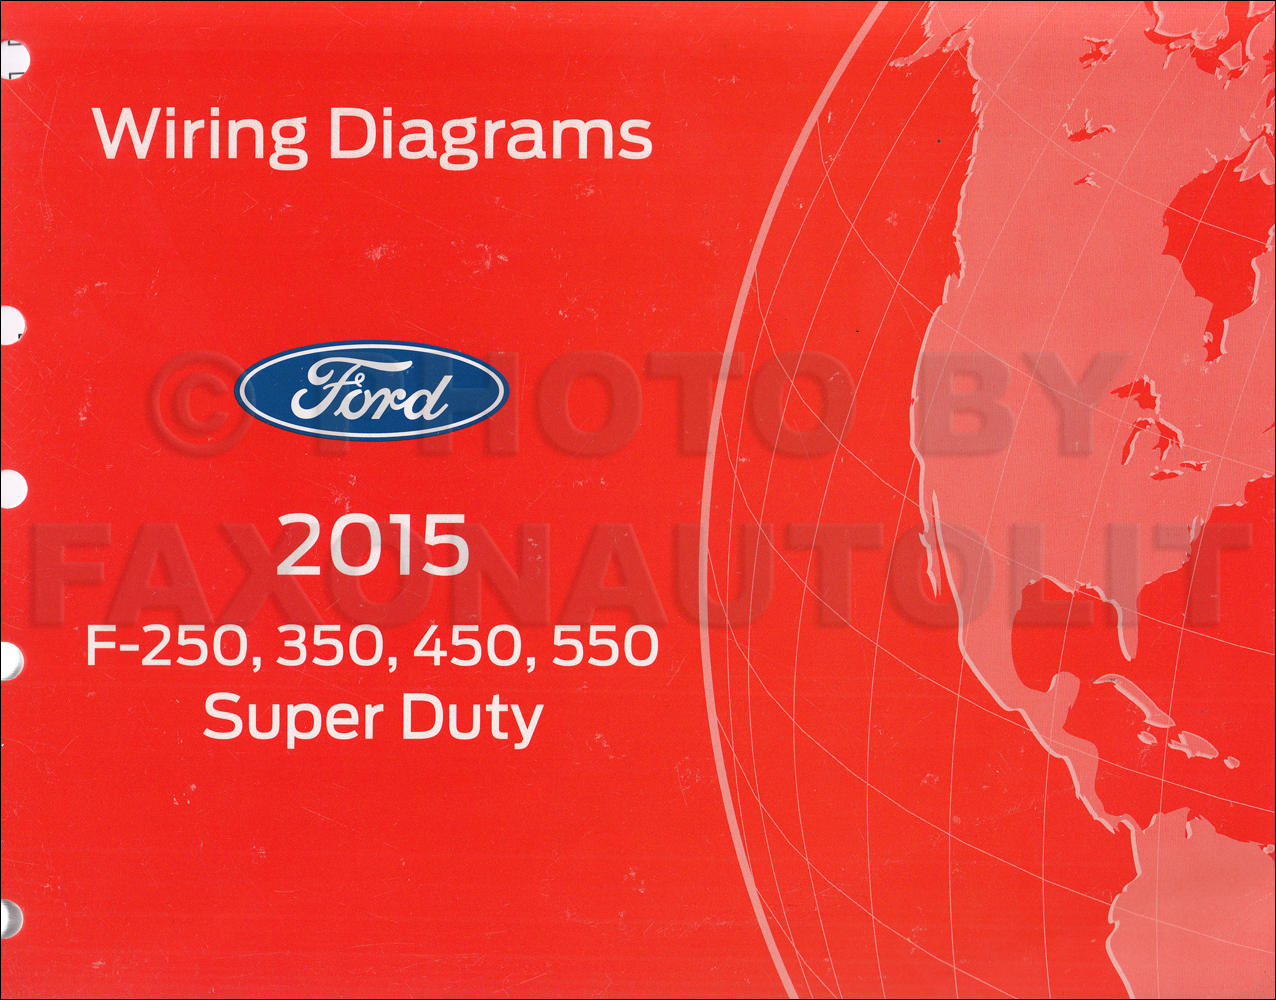 2015 ford f250-f550 super dutytruck wiring diagram manual  faxon auto literature